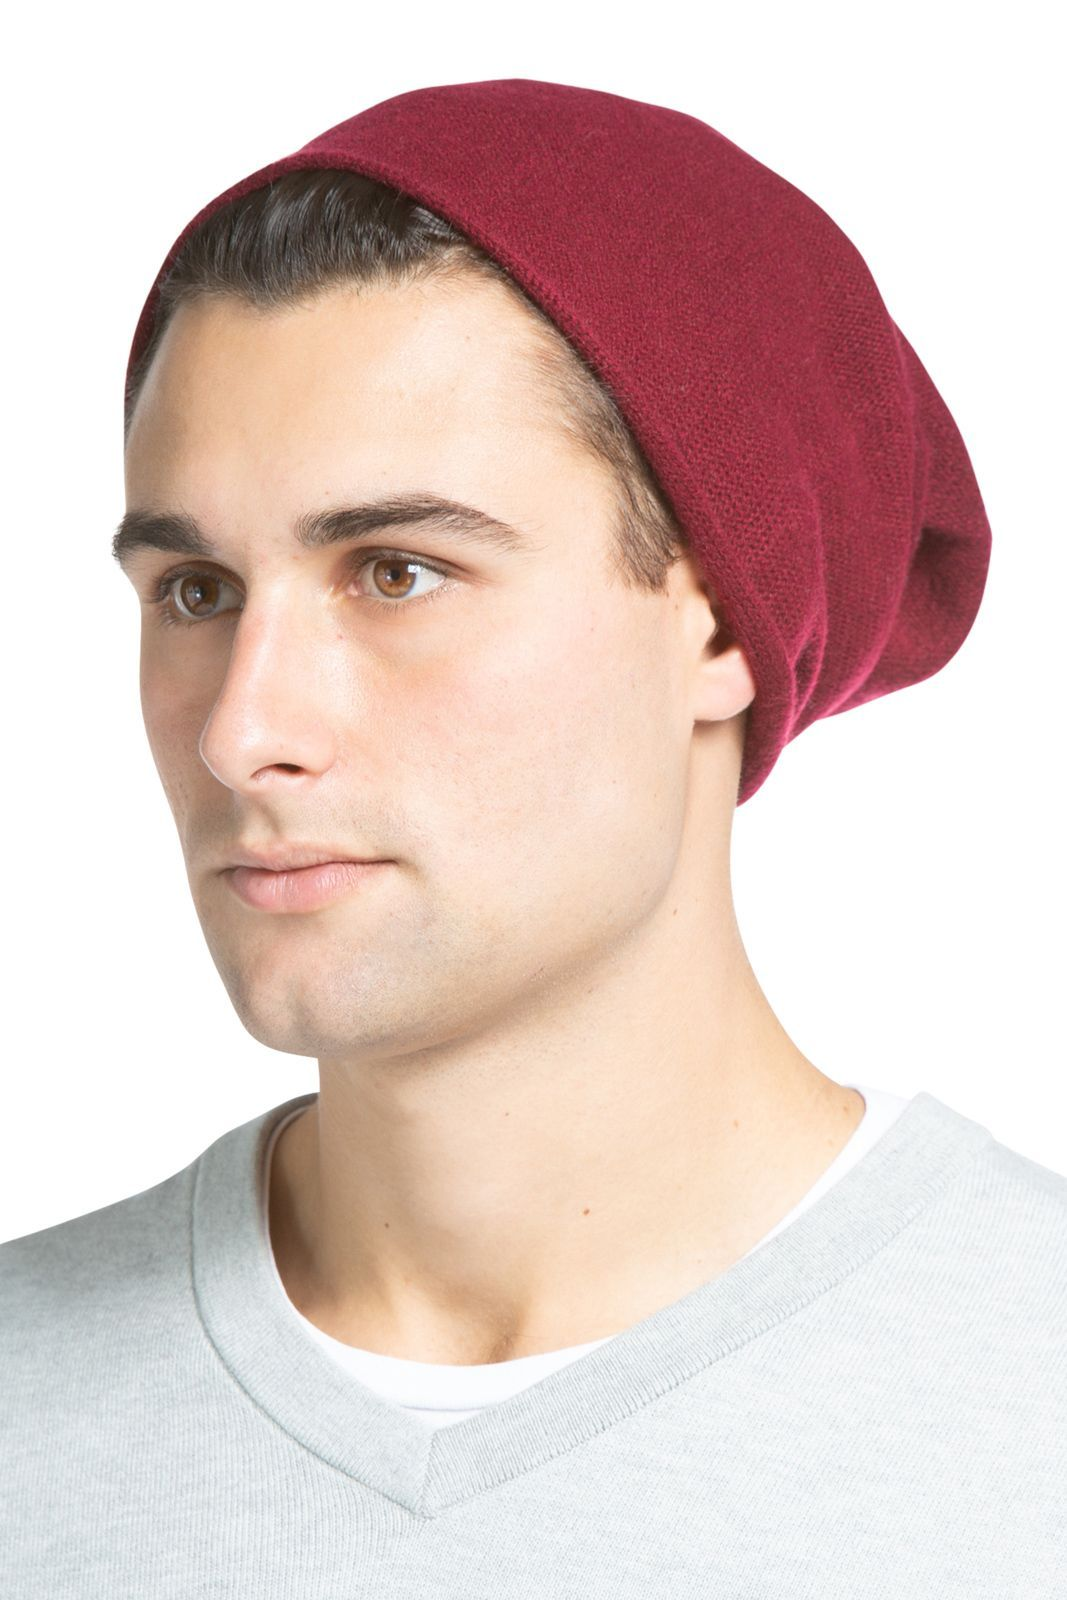 c9ab0f7be6005 Men s 100% Pure Cashmere Ribbed Hat - Fishers Finery - Fishers Finery